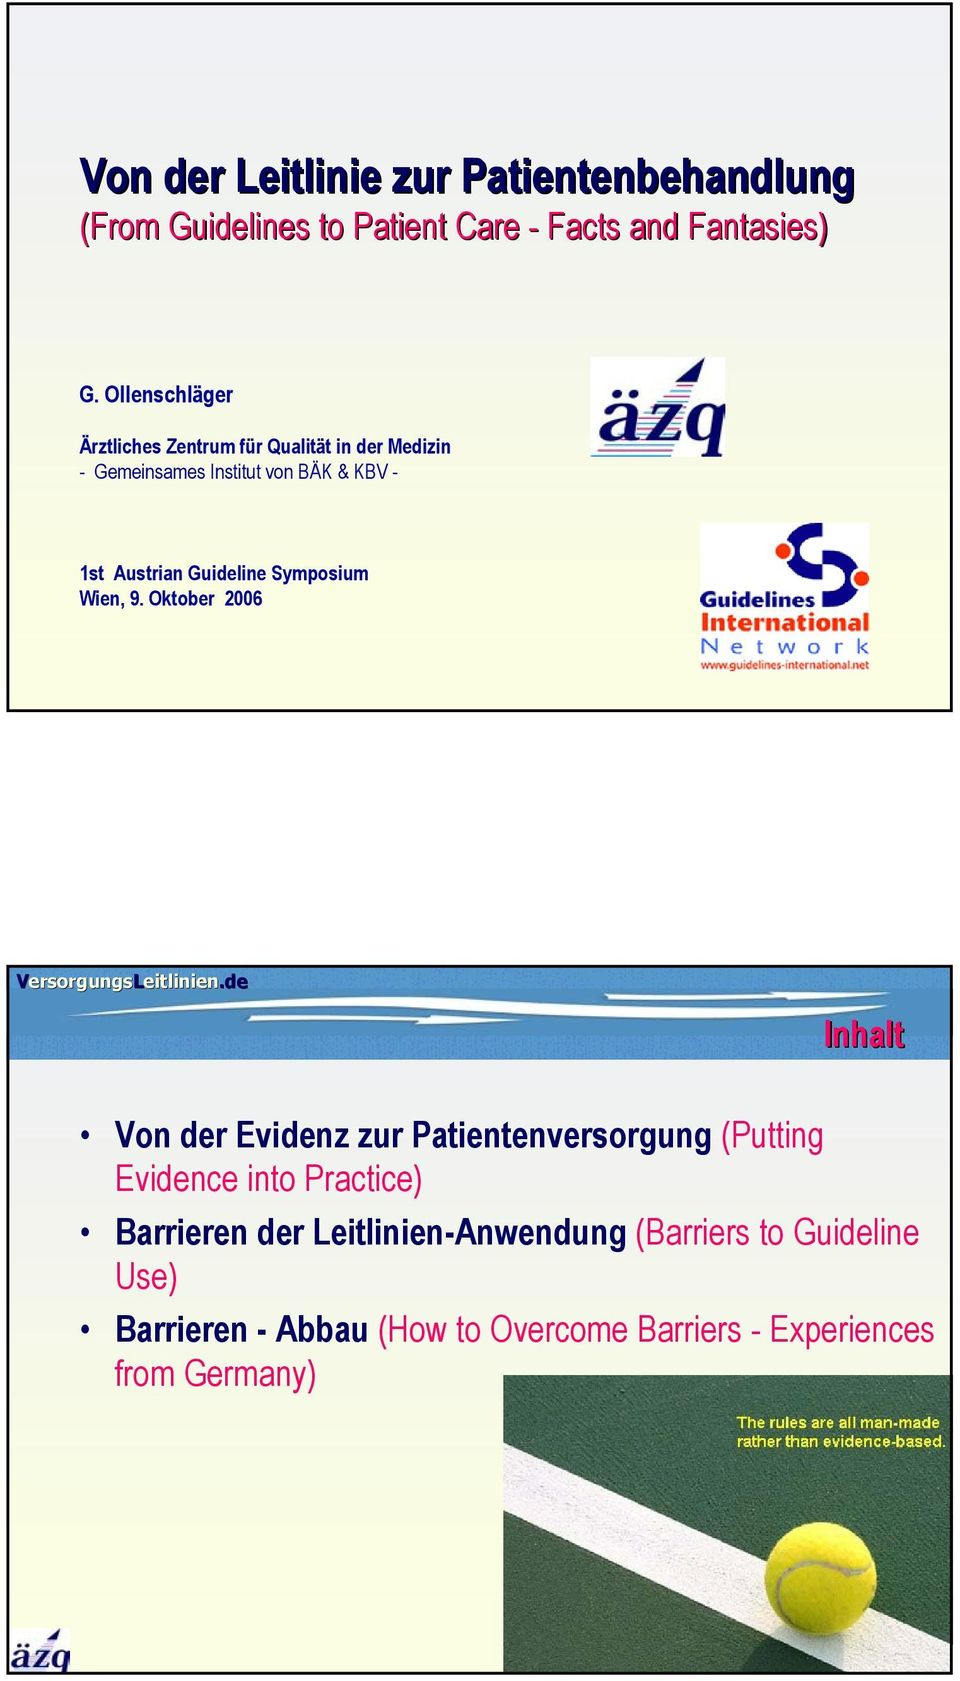 Guideline Symposium Wien, 9.